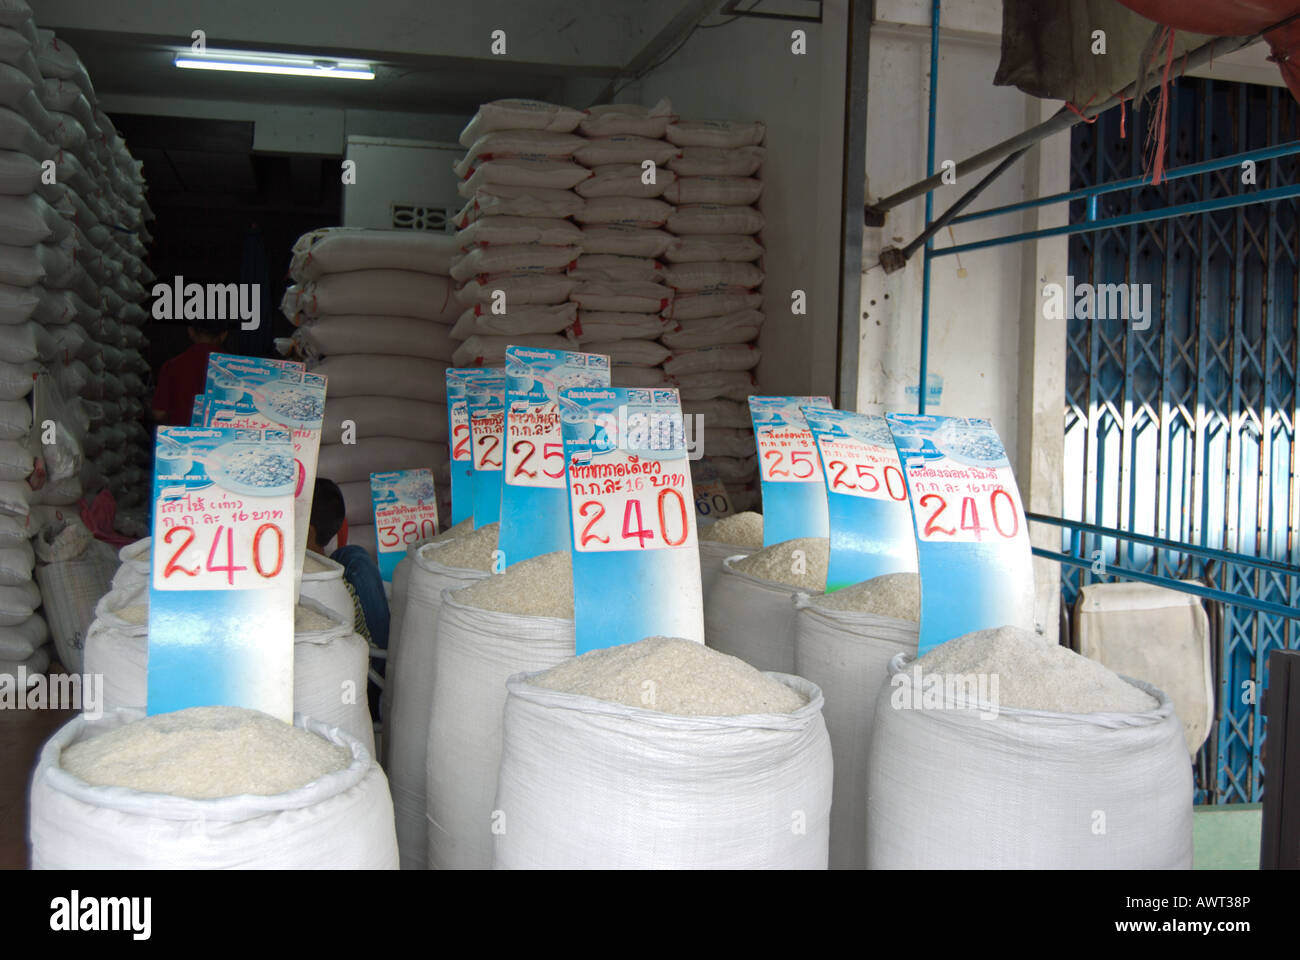 differently priced rice, graded according to quality, for sale from sacks at a market in phetchabun thailand - Stock Image